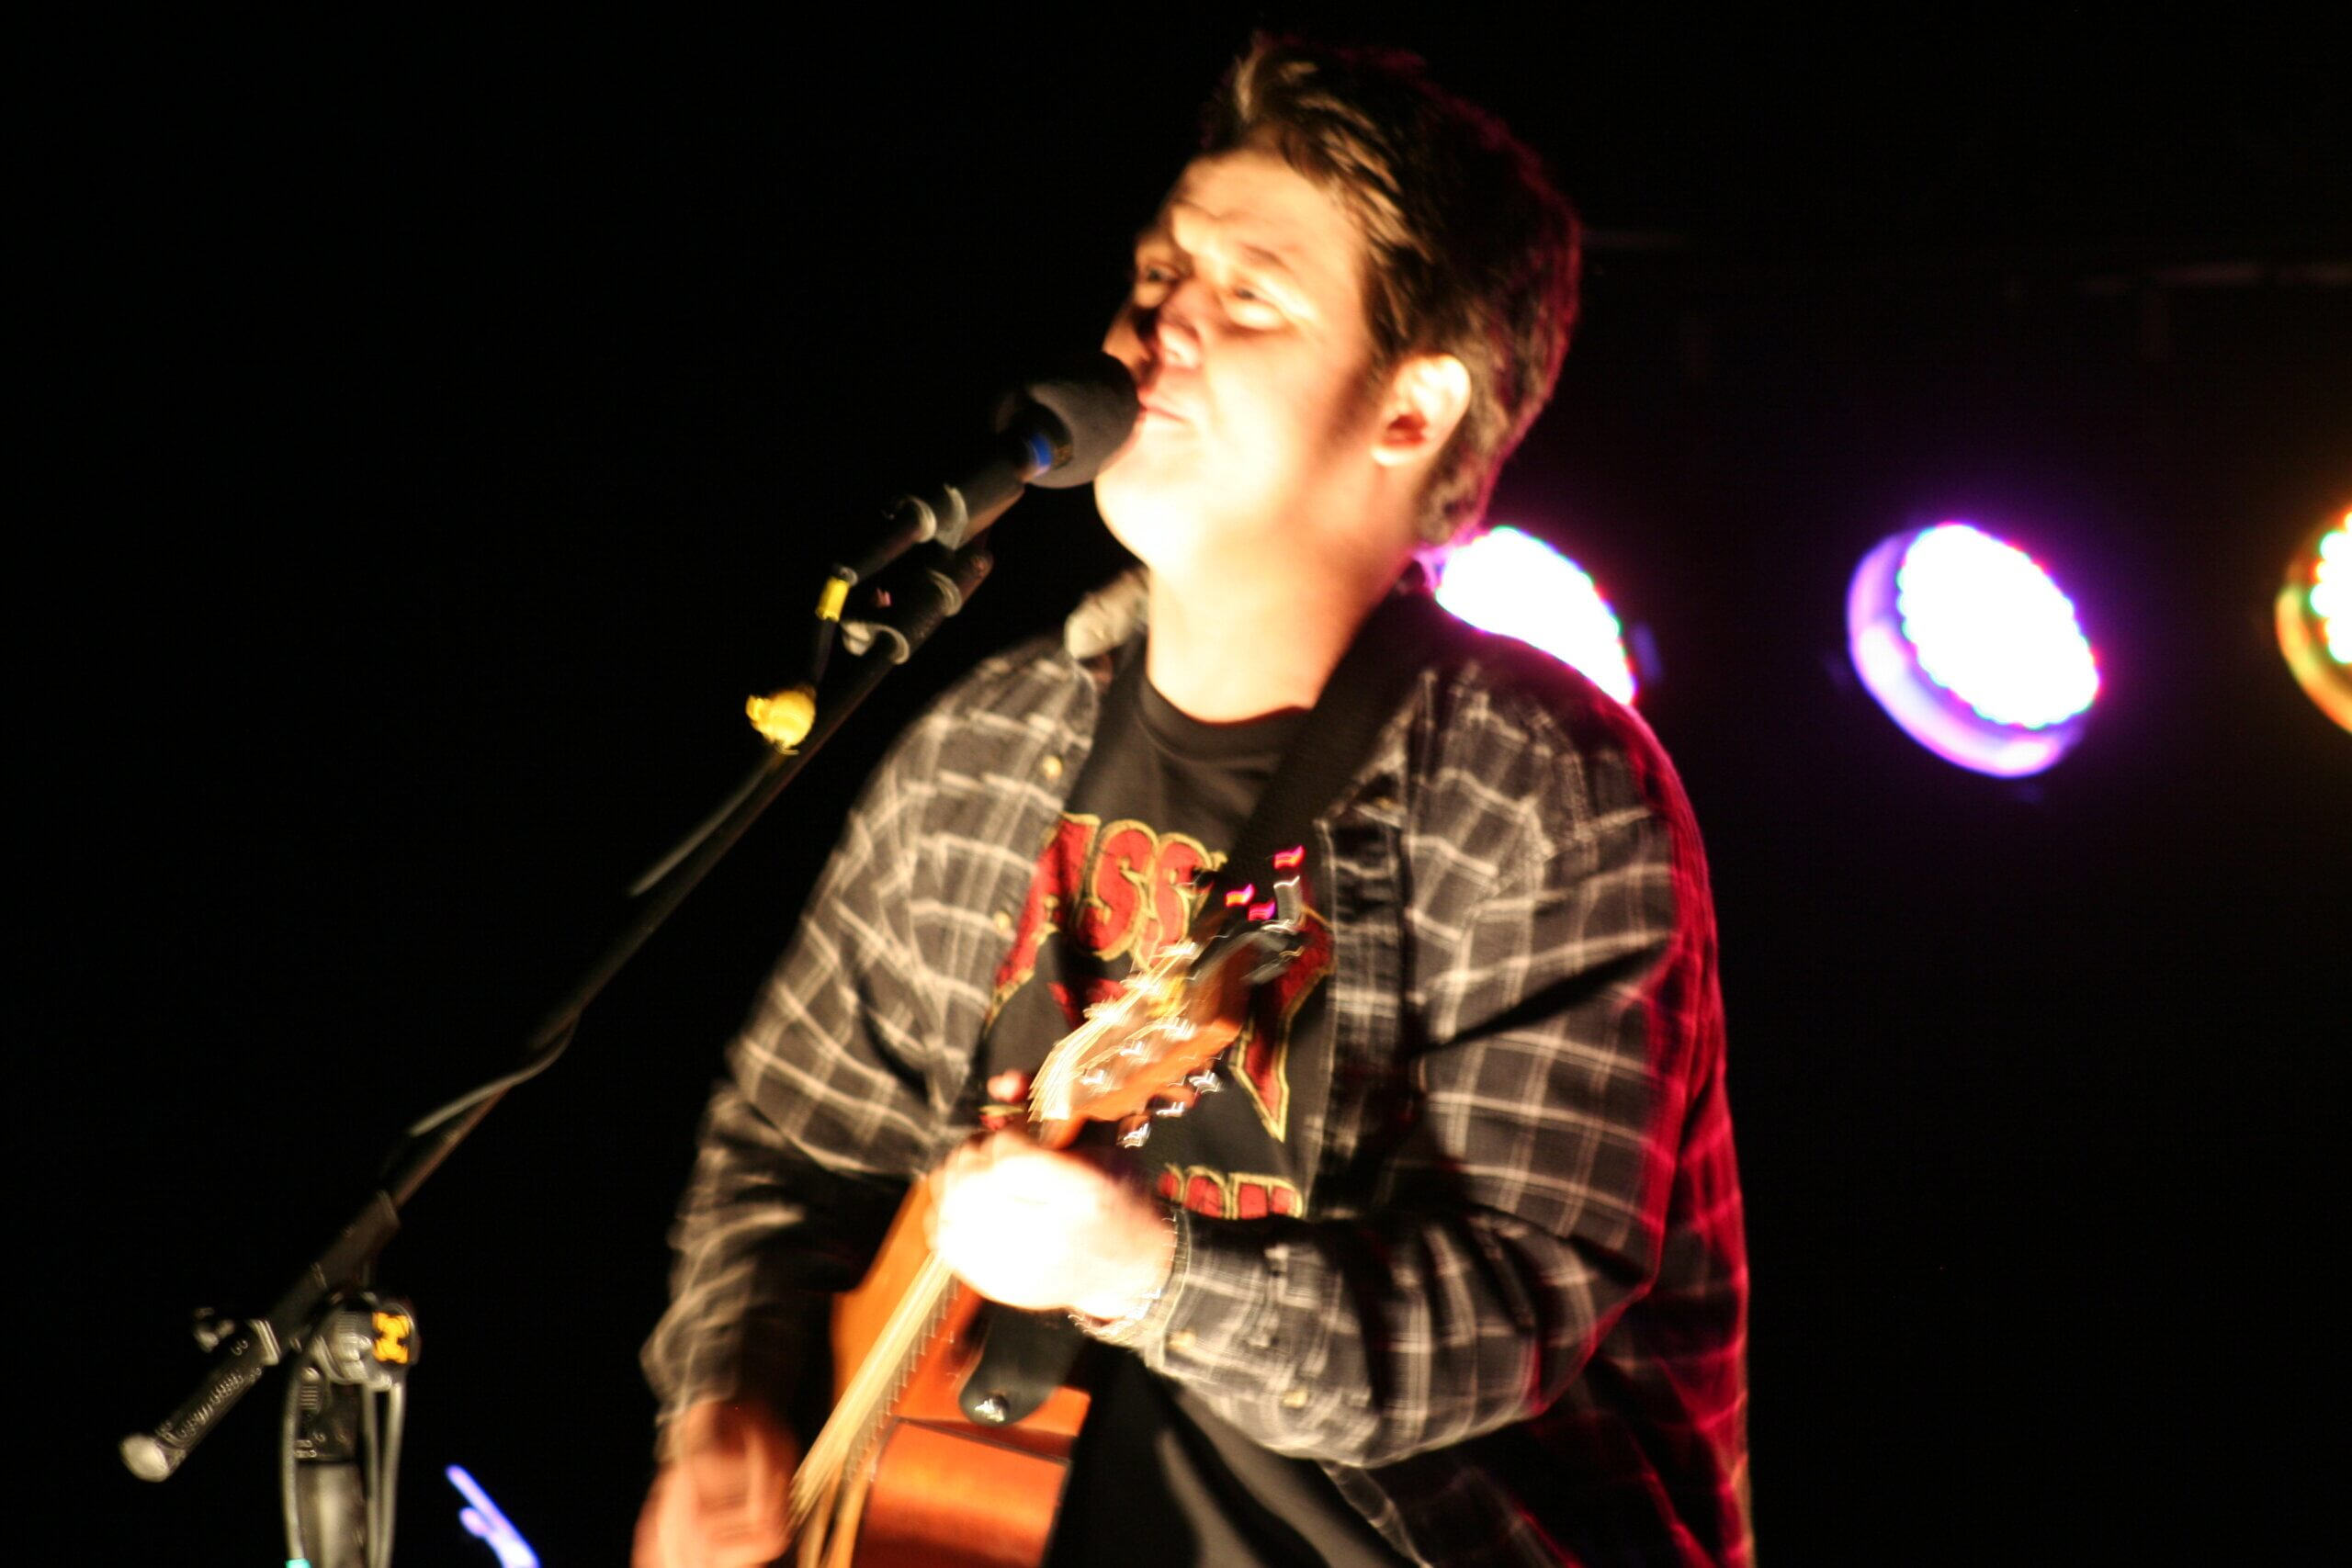 Aaron Traffas live country music at Medicine Lodge rodeo grounds